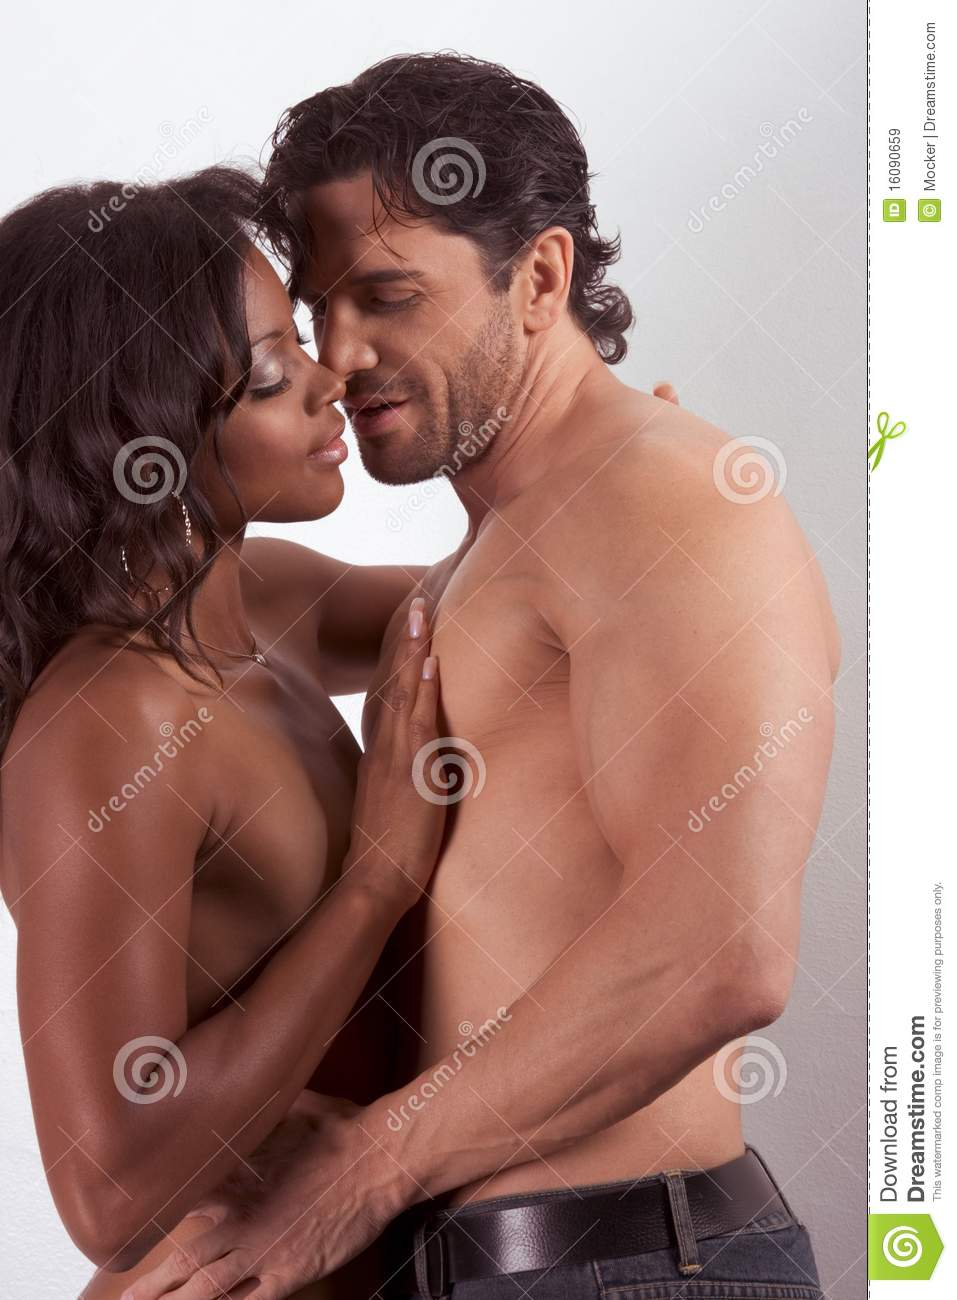 Nude black women white men kissing